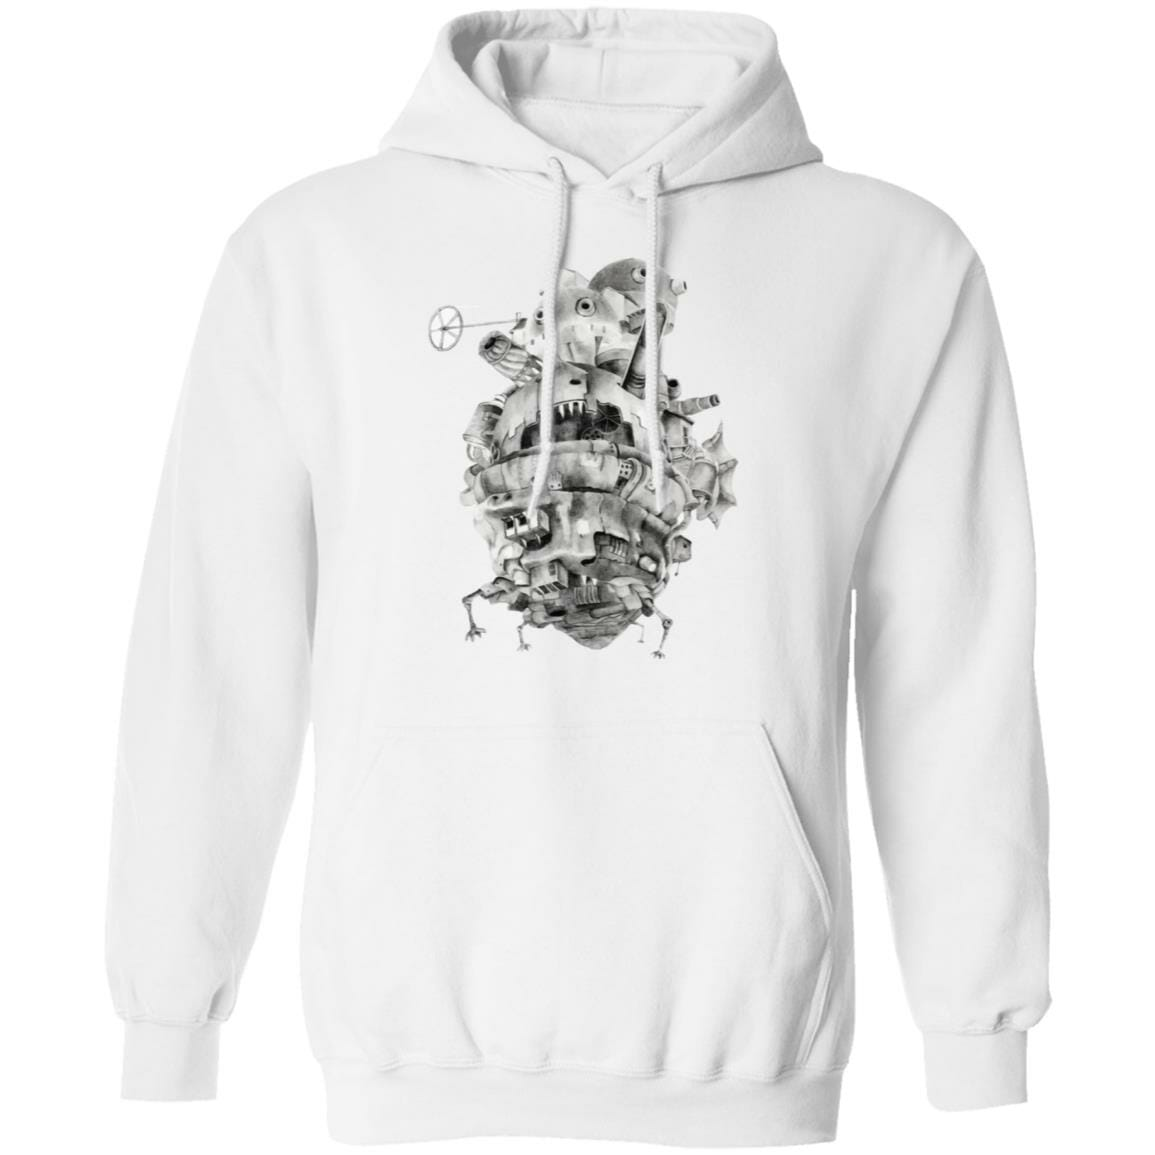 Howl's Moving Castle 3D Hoodie